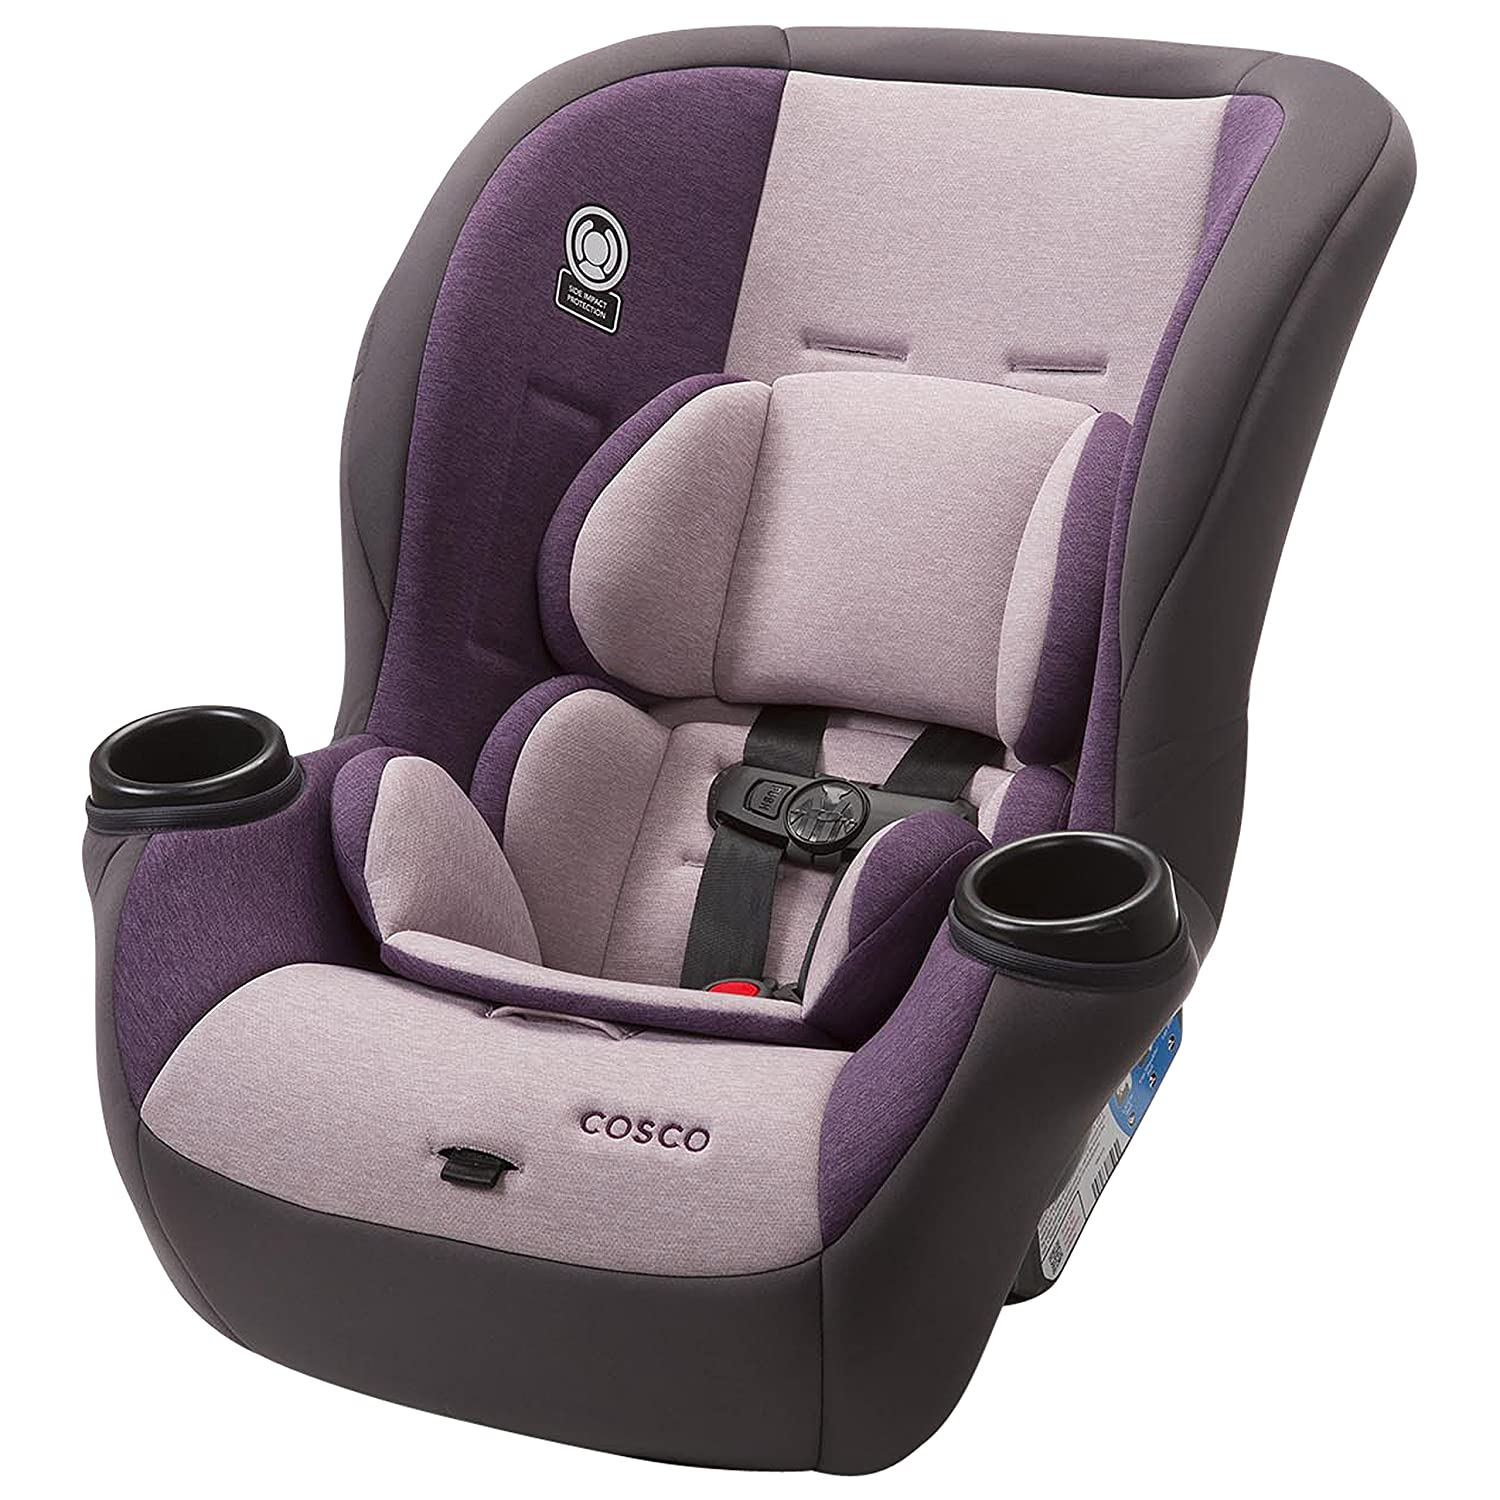 Amazon.com : Cosco Comfy Convertible Car Seat, Heather Amethyst : Baby